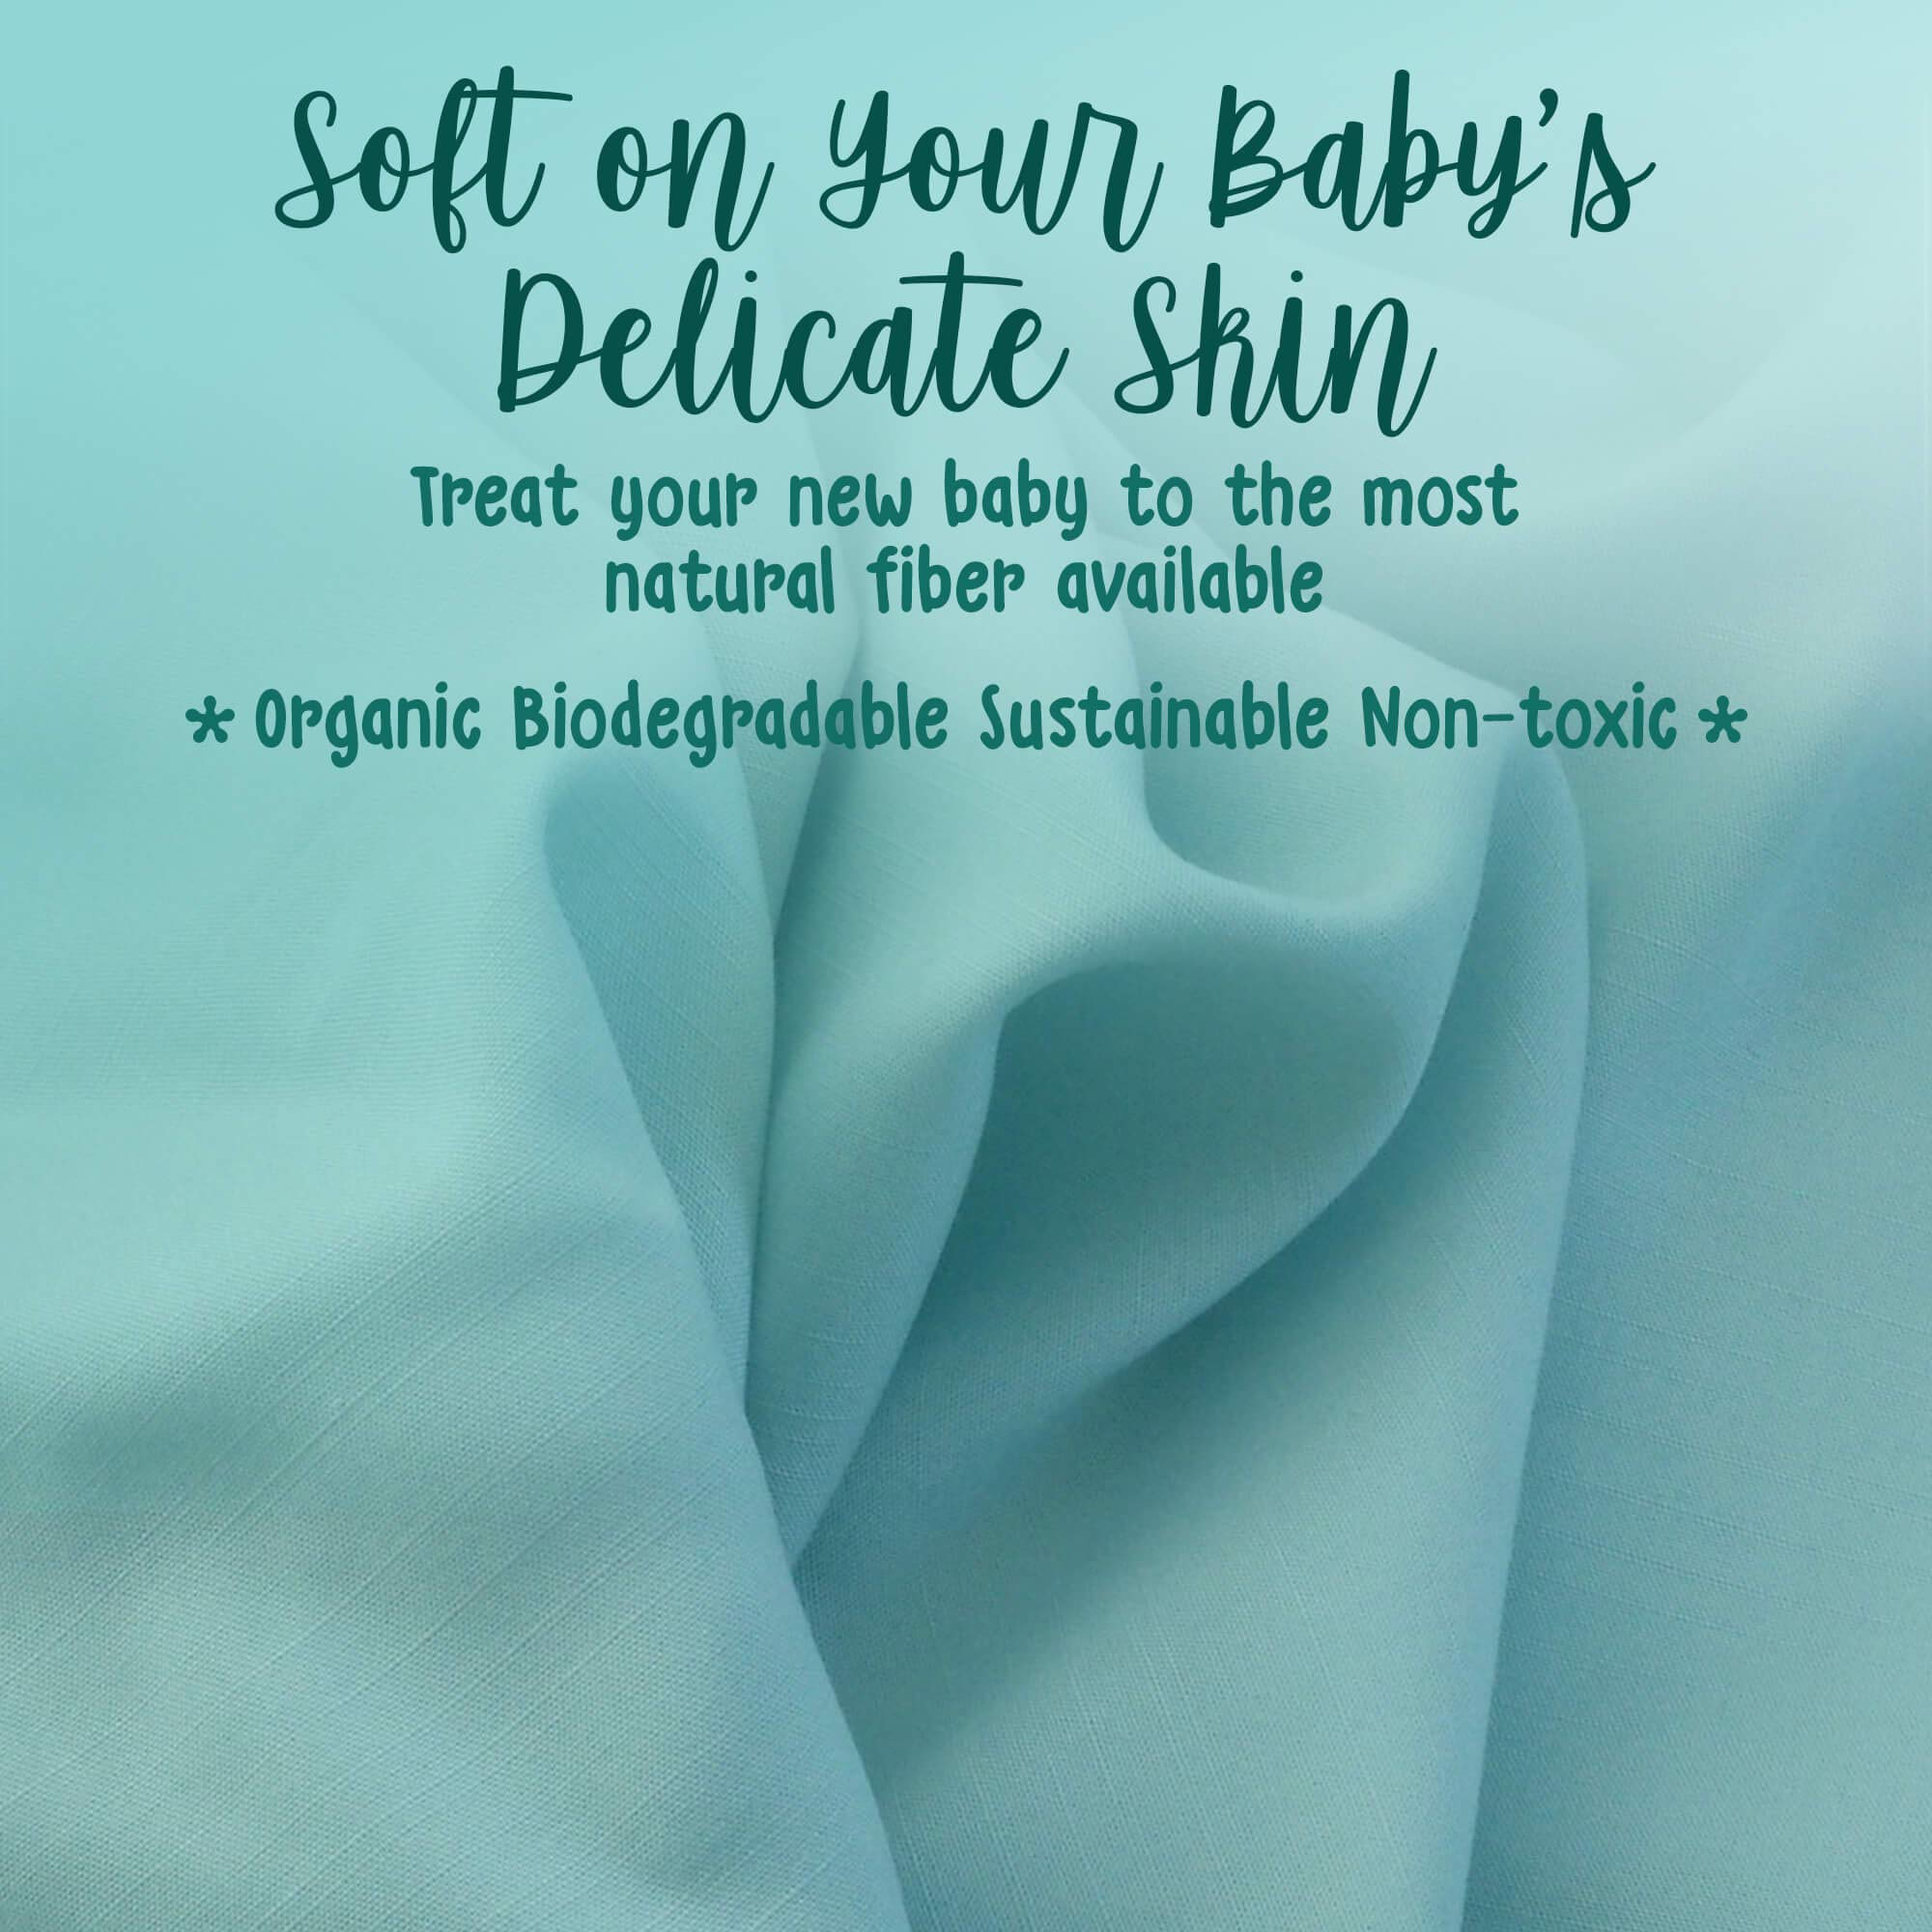 Organic Baby Bath Pillow - Konjac Sponge Included, Blooming Flower for Infant Bathing in Sink, Bathtub or Plastic Bather to Cushion Their Newborn Skin. by IndulgeMe (Image #4)